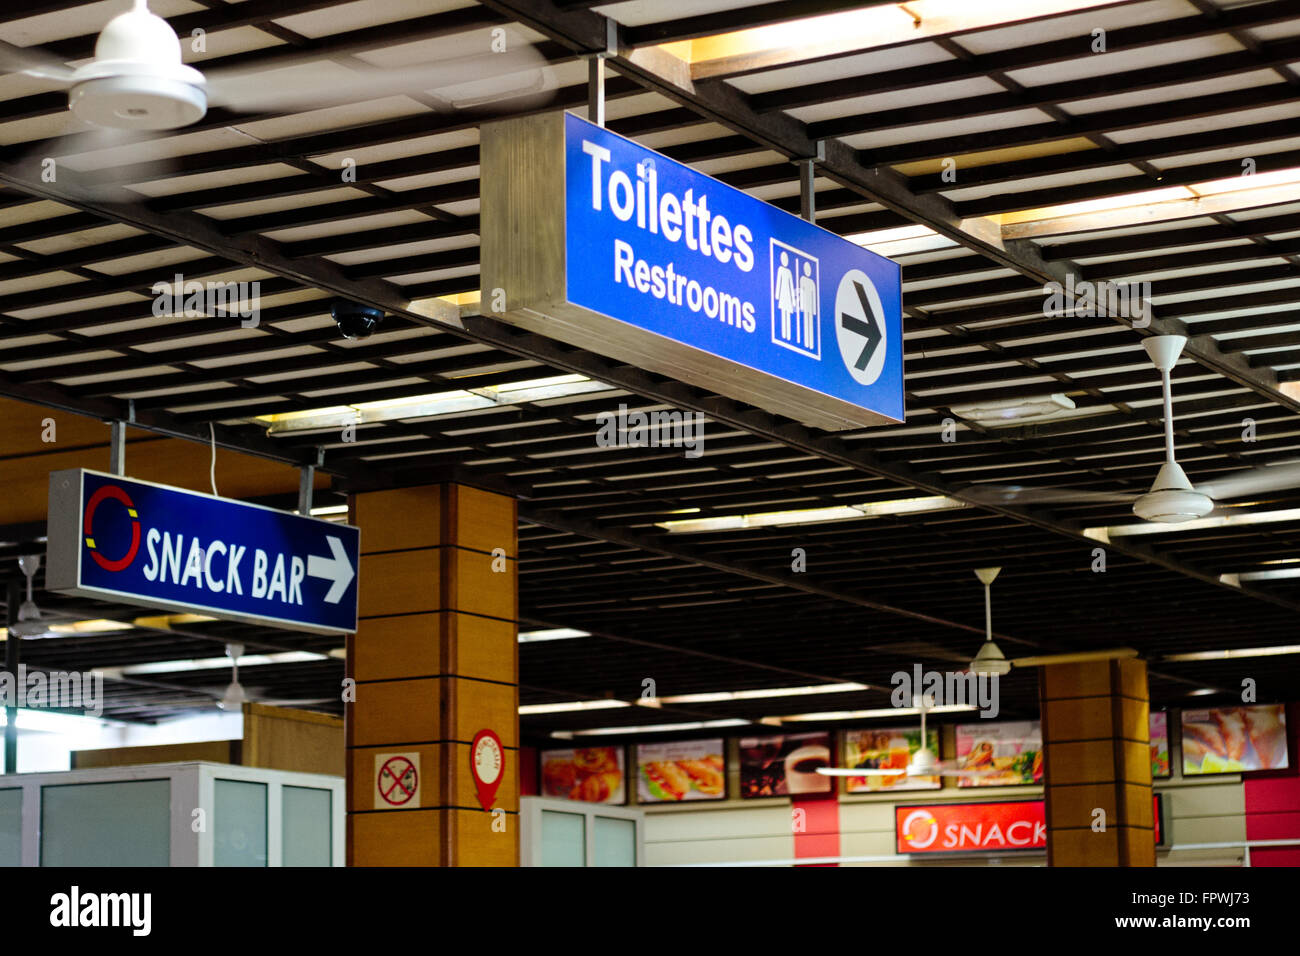 Airport ceiling with toilette and snack bar sign - Stock Image